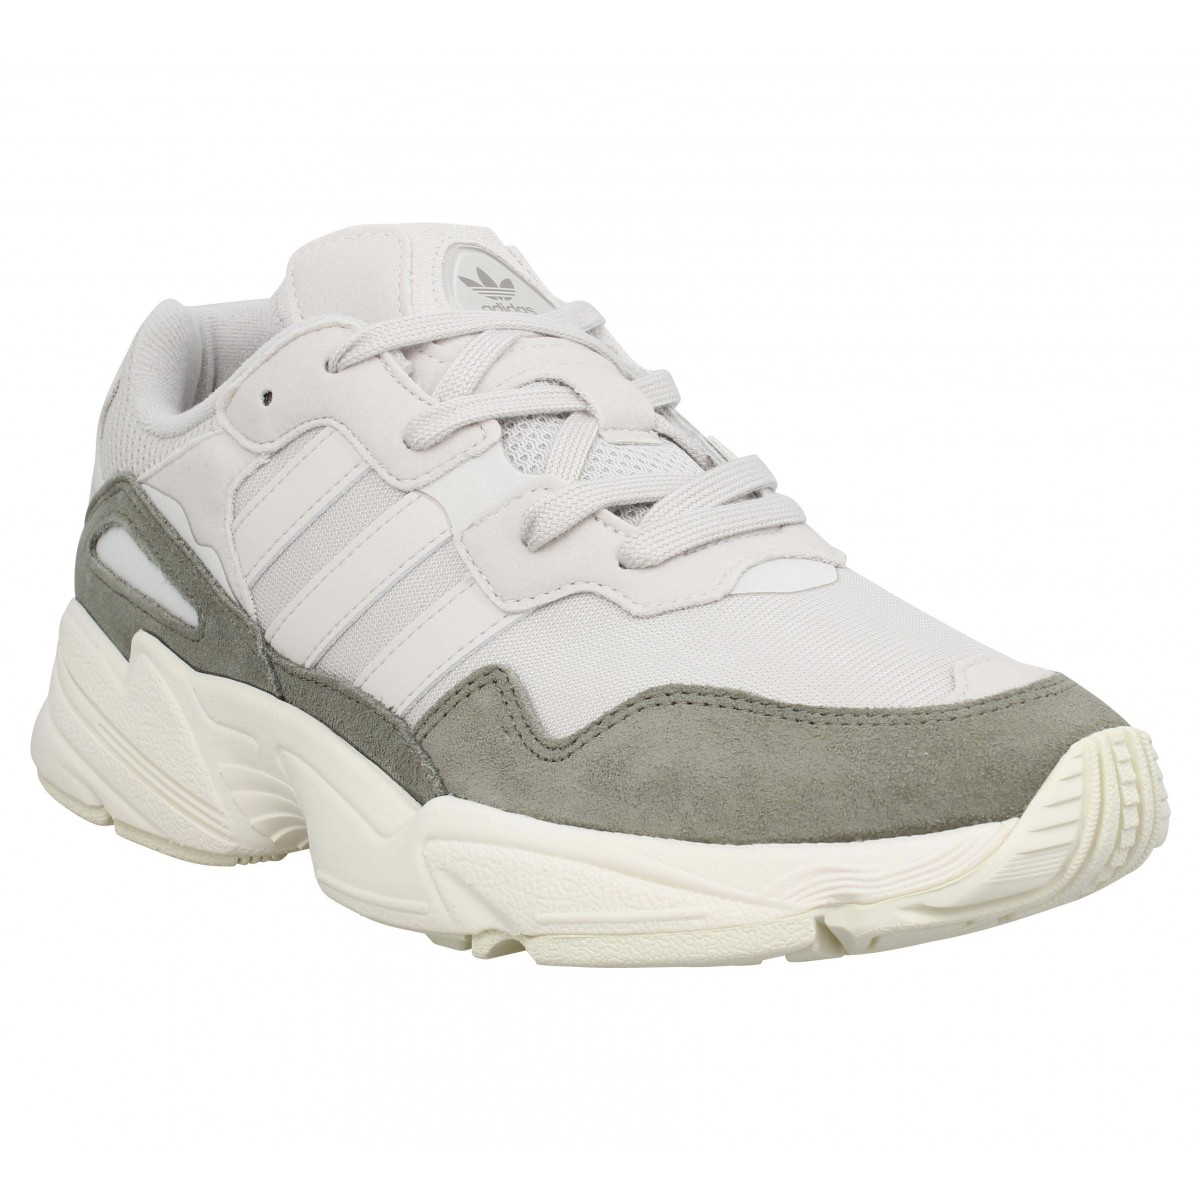 ADIDAS Yung 96 toile Homme Blanc Brut